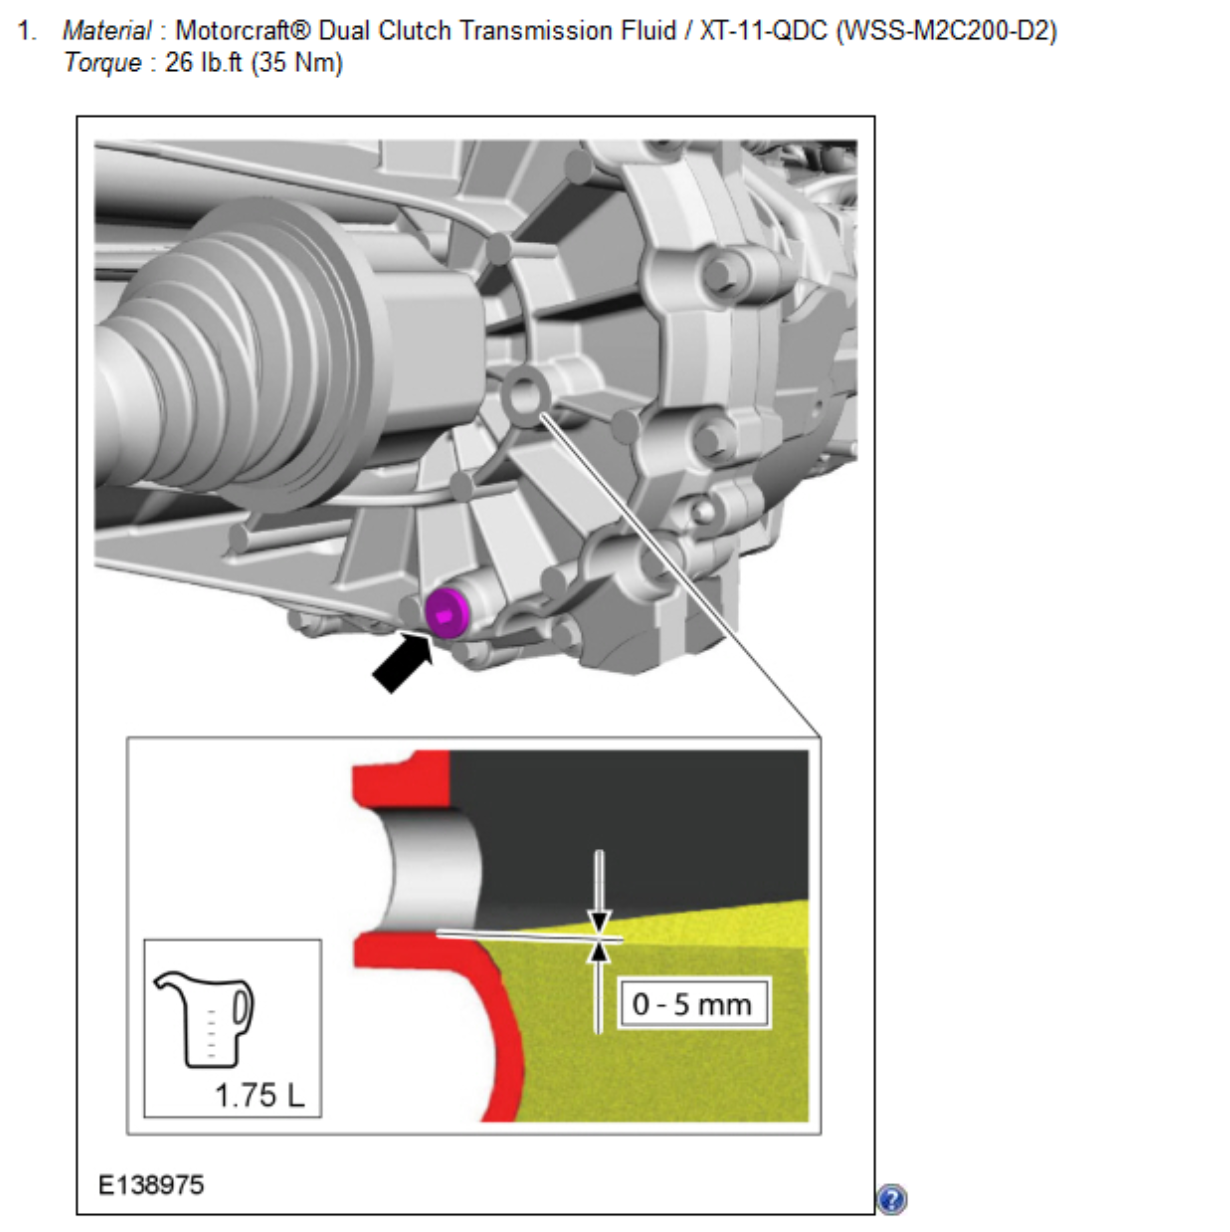 2014 Ford Focus Spark Plug Torque Specs Torque on spark plugs Ford